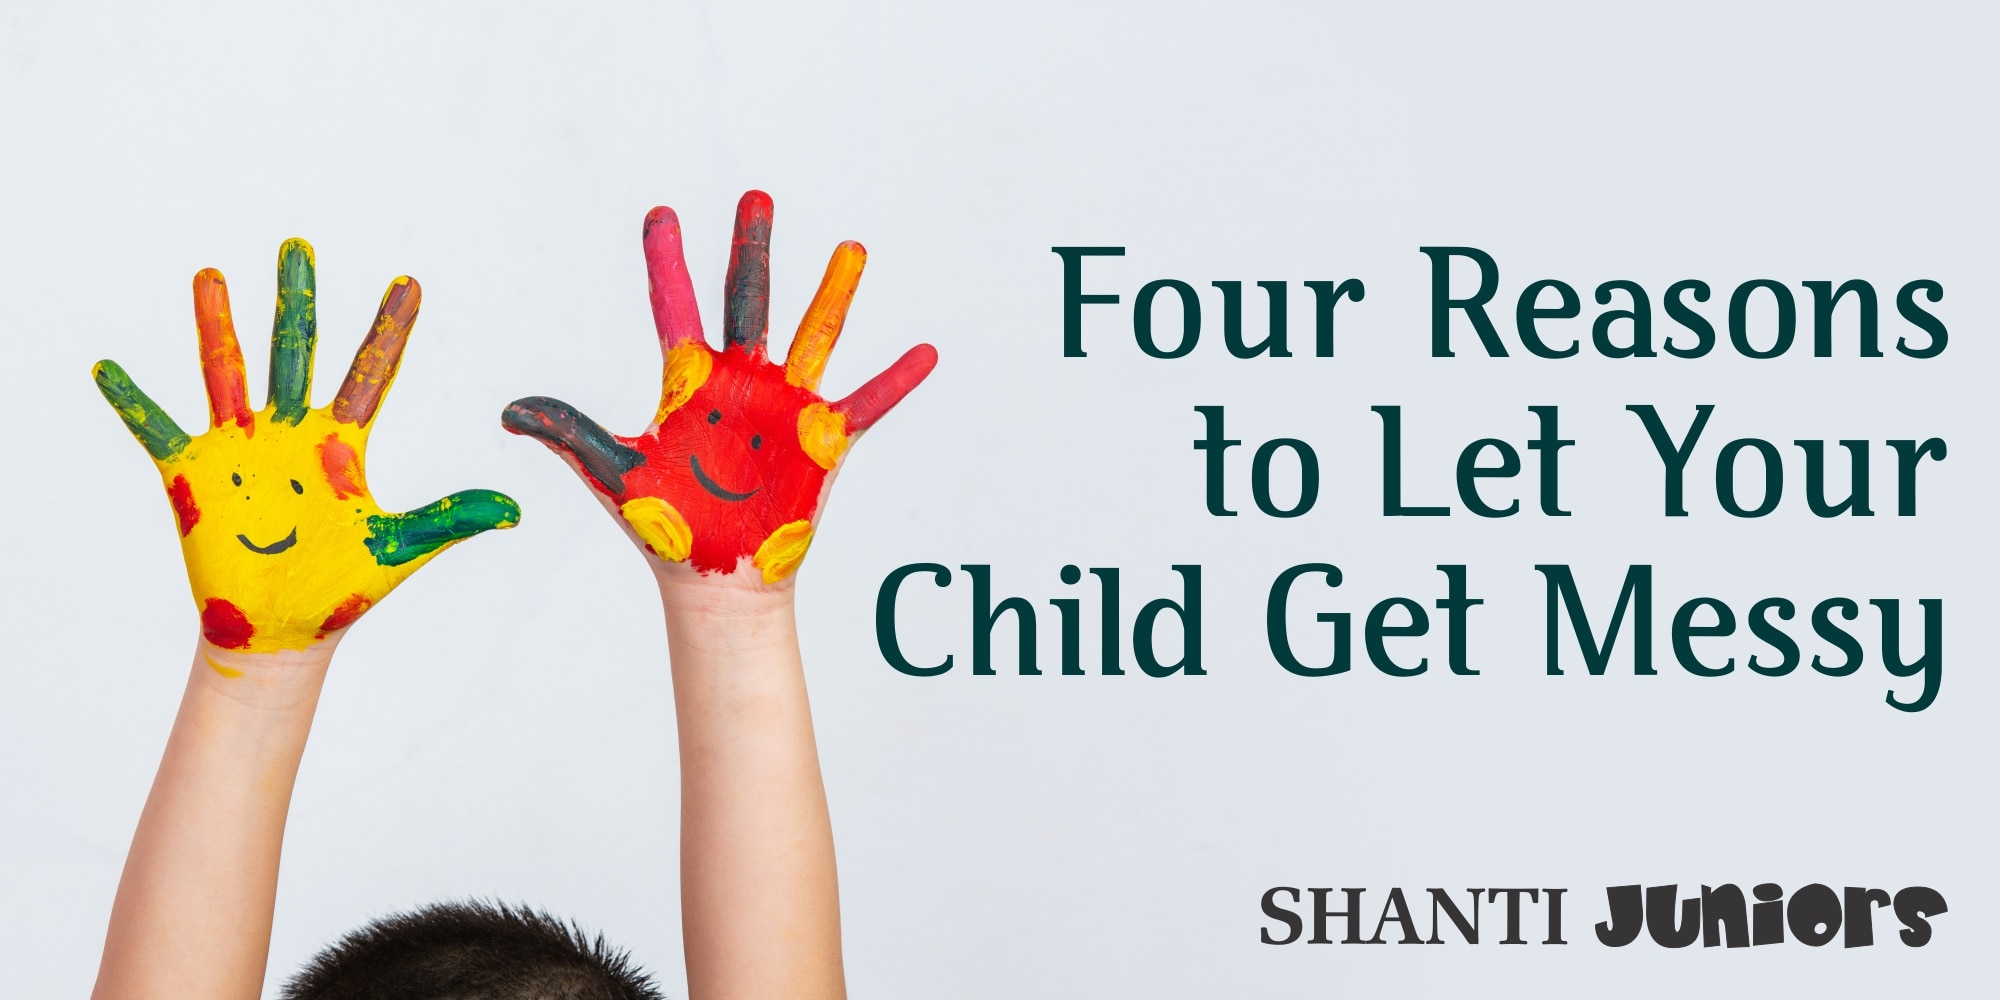 Four Reasons to Let Your Child Get Messy